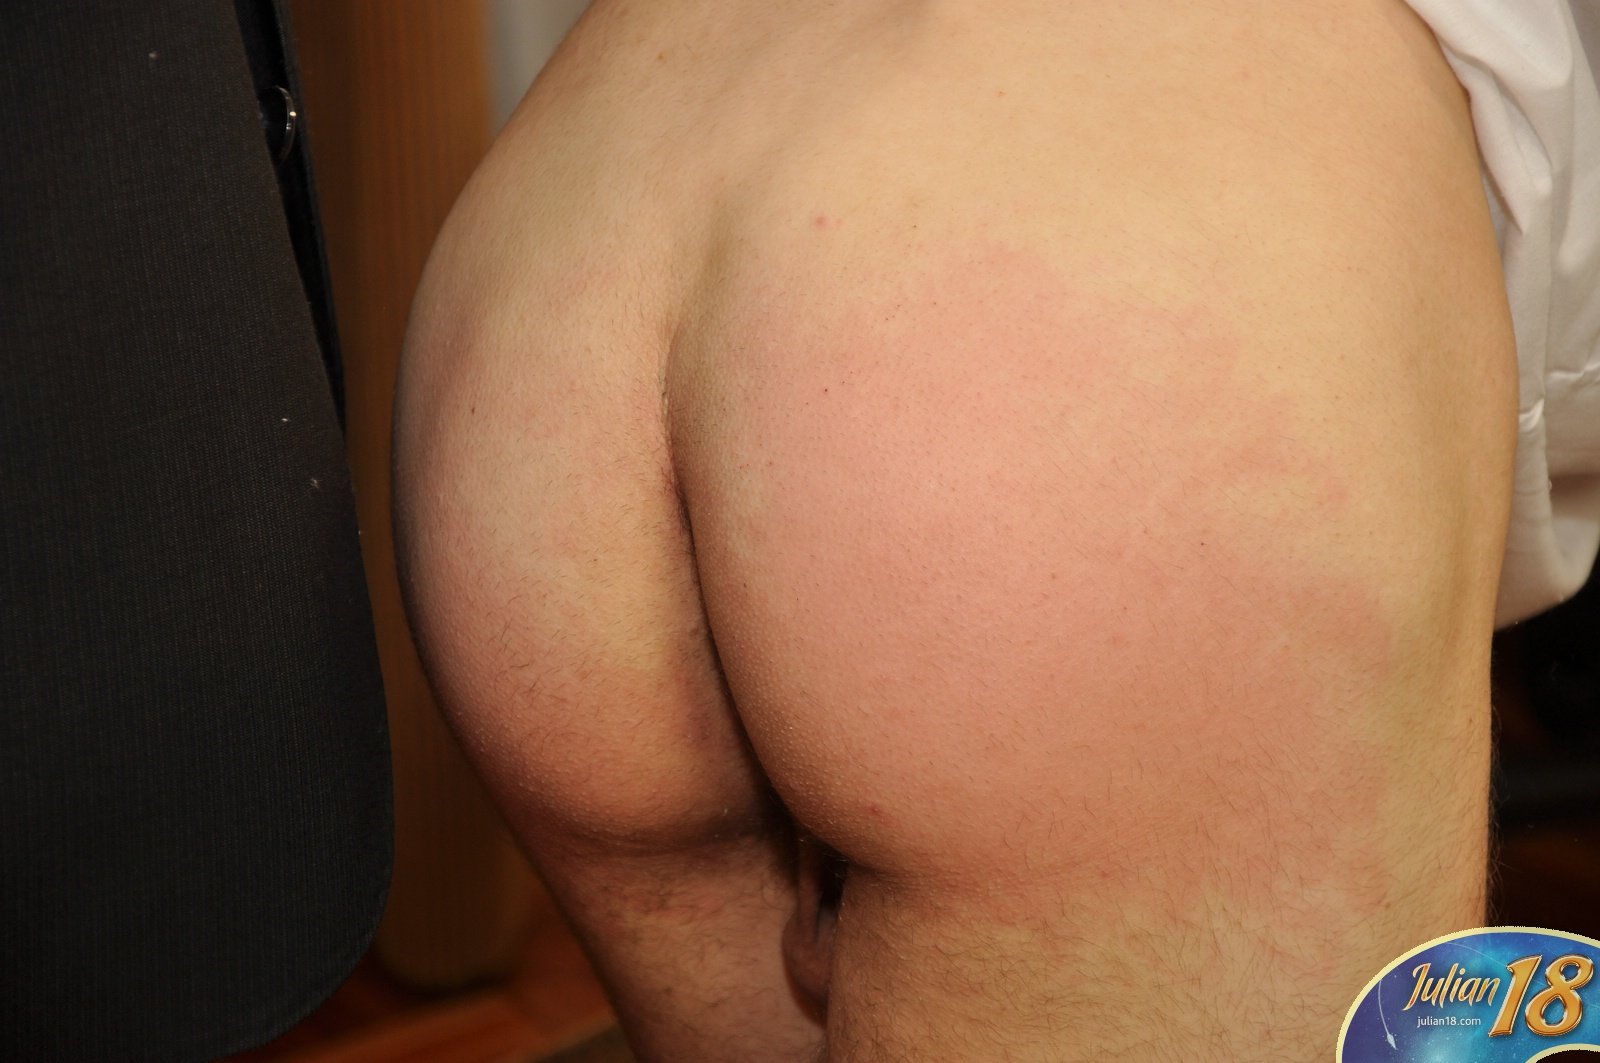 mature gay cock sucking 012 I have just undergone a procedure which required a period of convalescence, ...